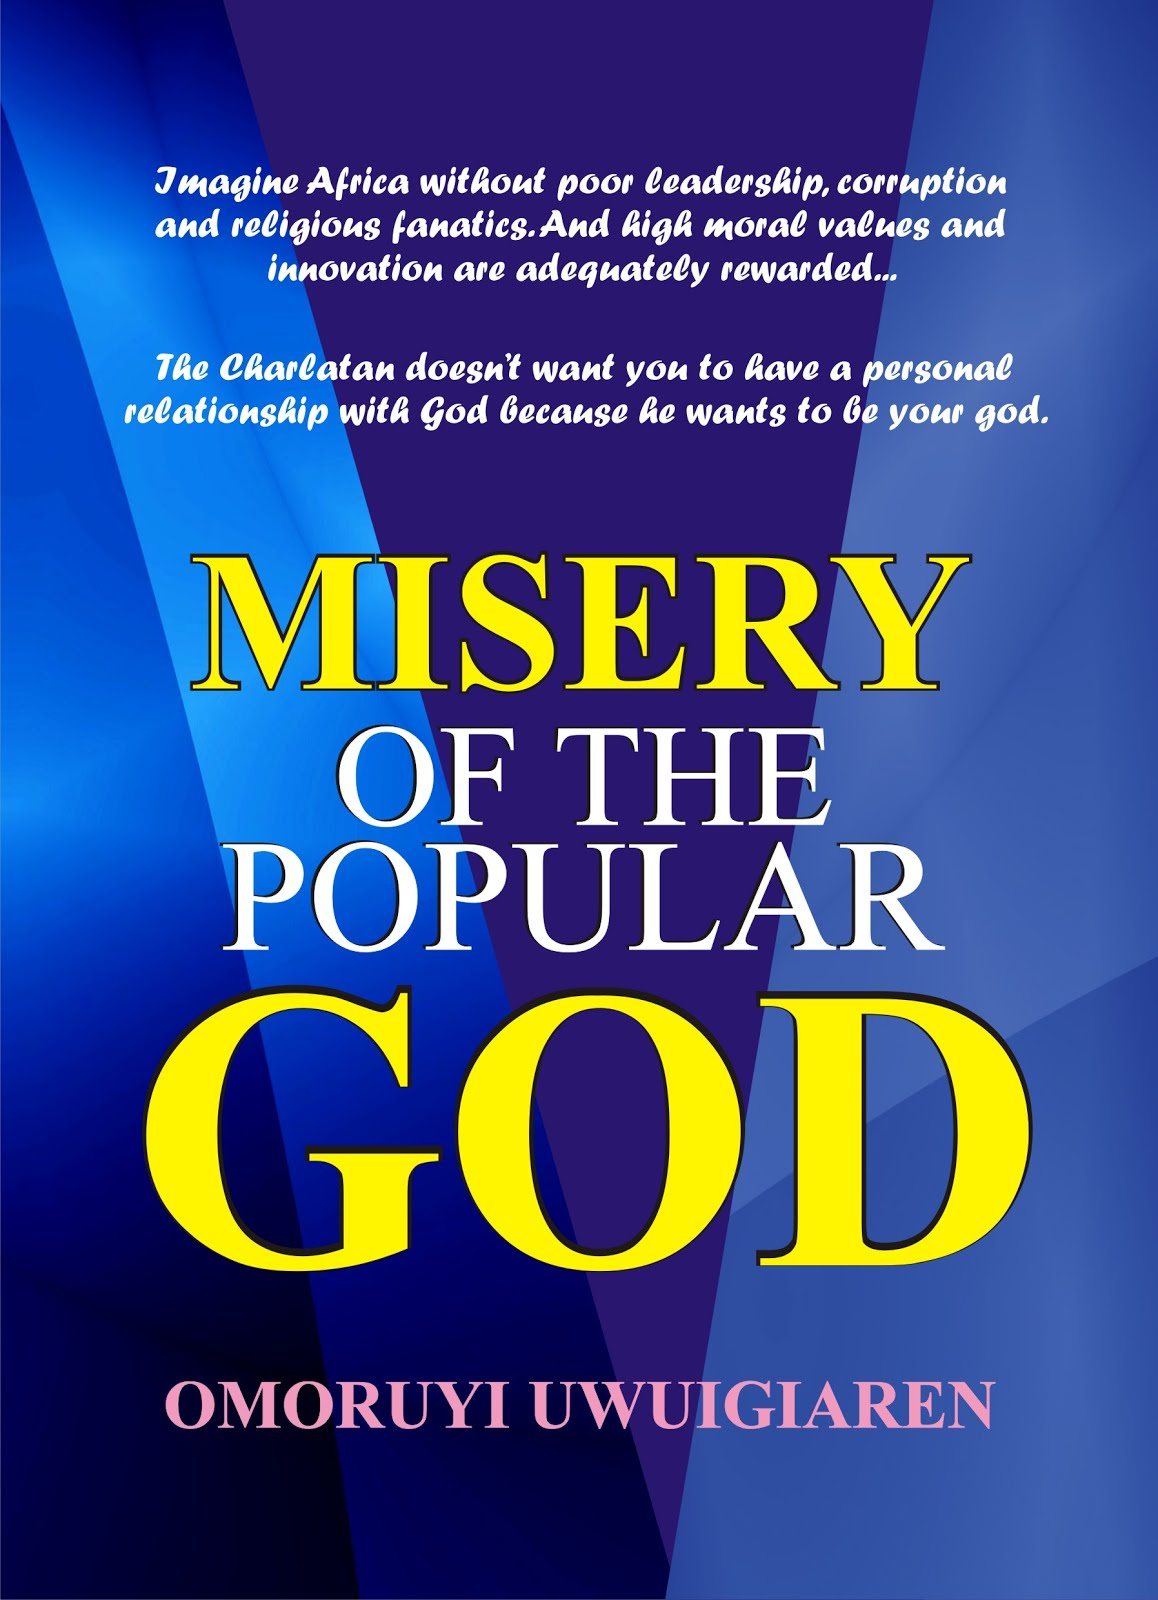 COMING SOON: Misery of the Popular God by Omoruyi Uwuigiaren